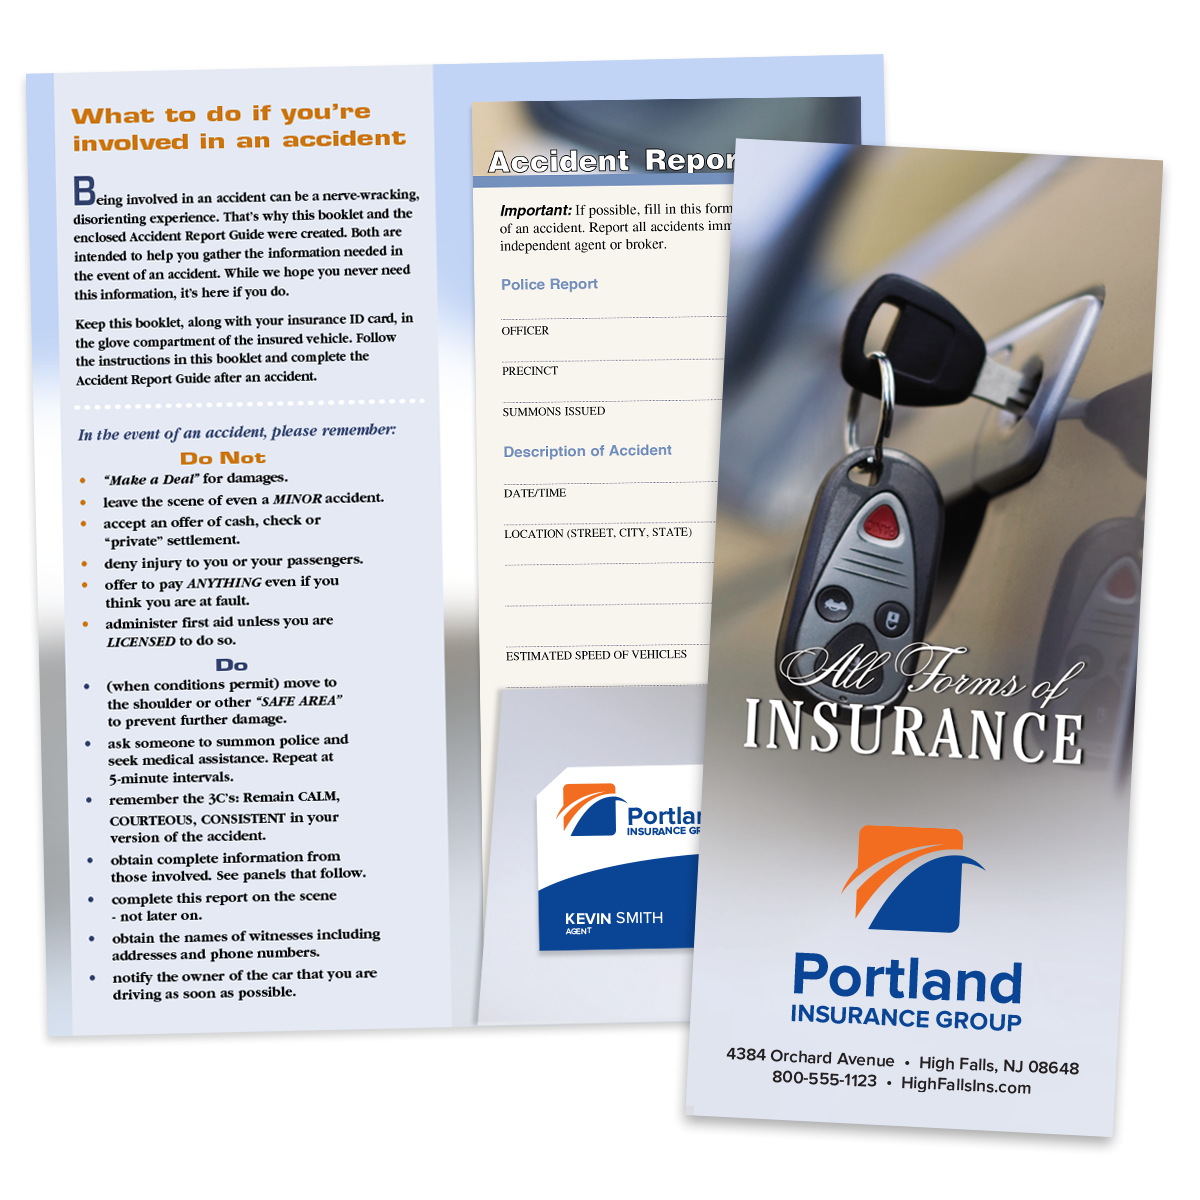 picture of full color insurance card holder kits - Insurance Card Holder